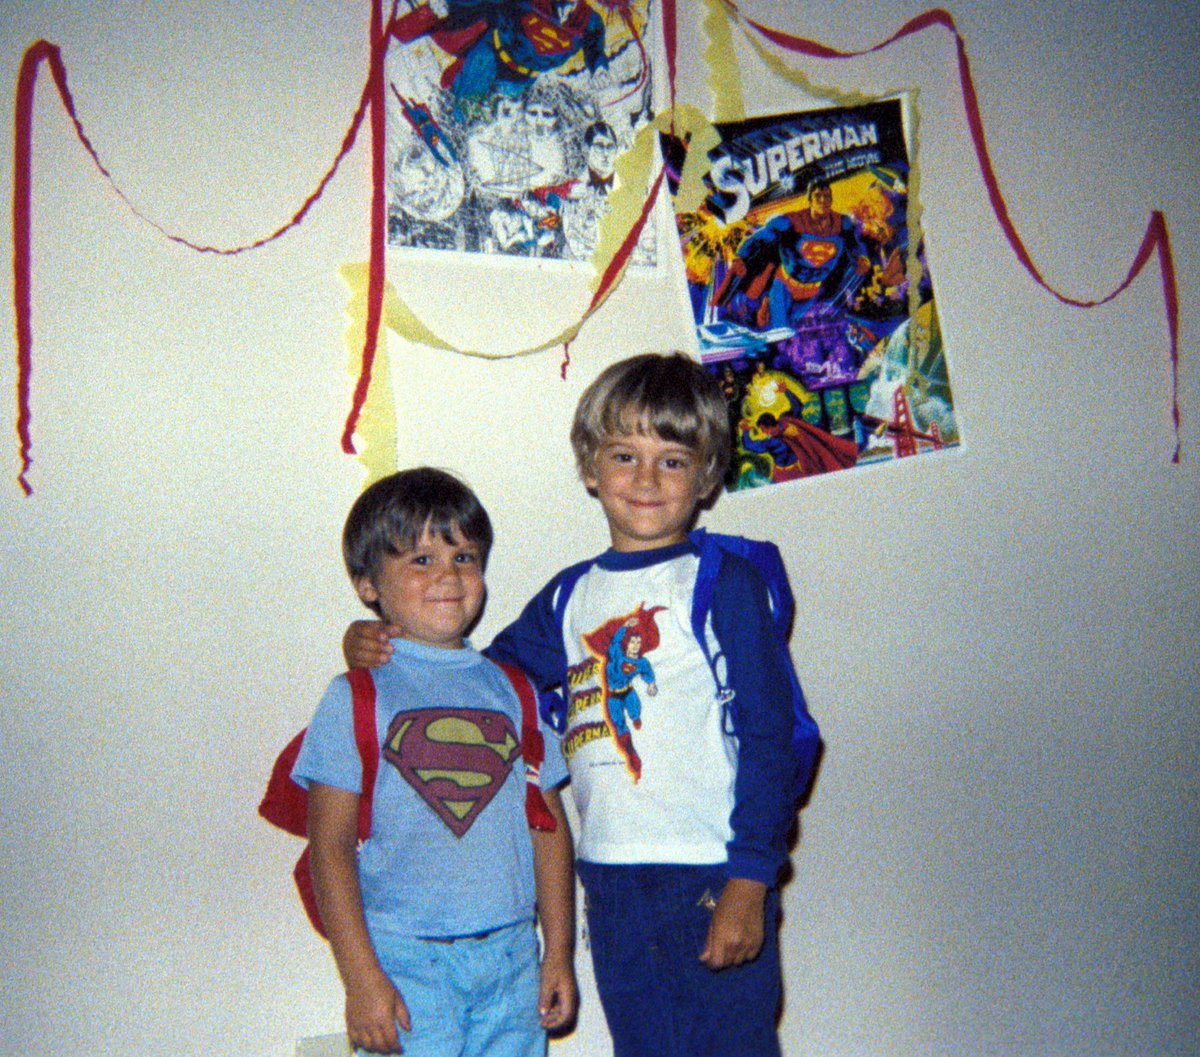 My brother and I were big Batman fans growing up. #tbt